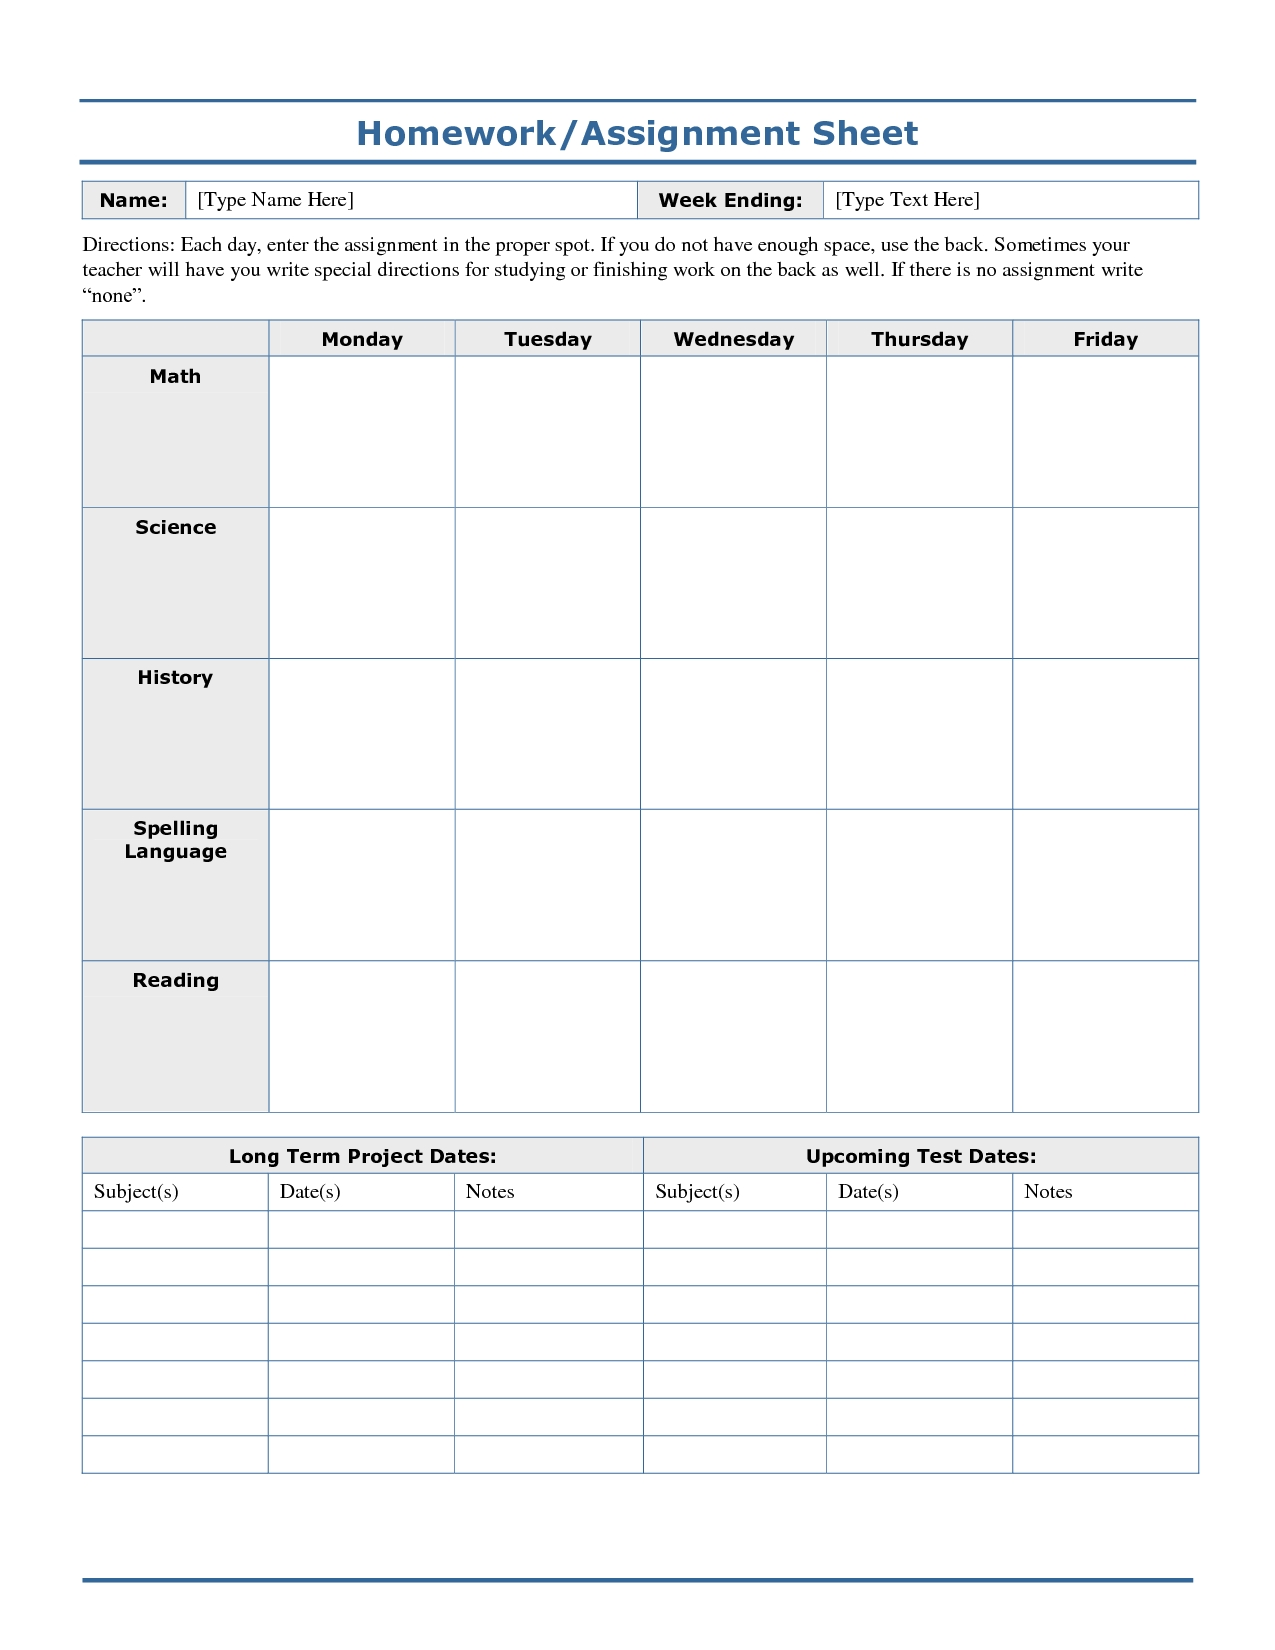 Weekly+Homework+Assignment+Sheet+Template | Homework Sheet  Homework Templates Free